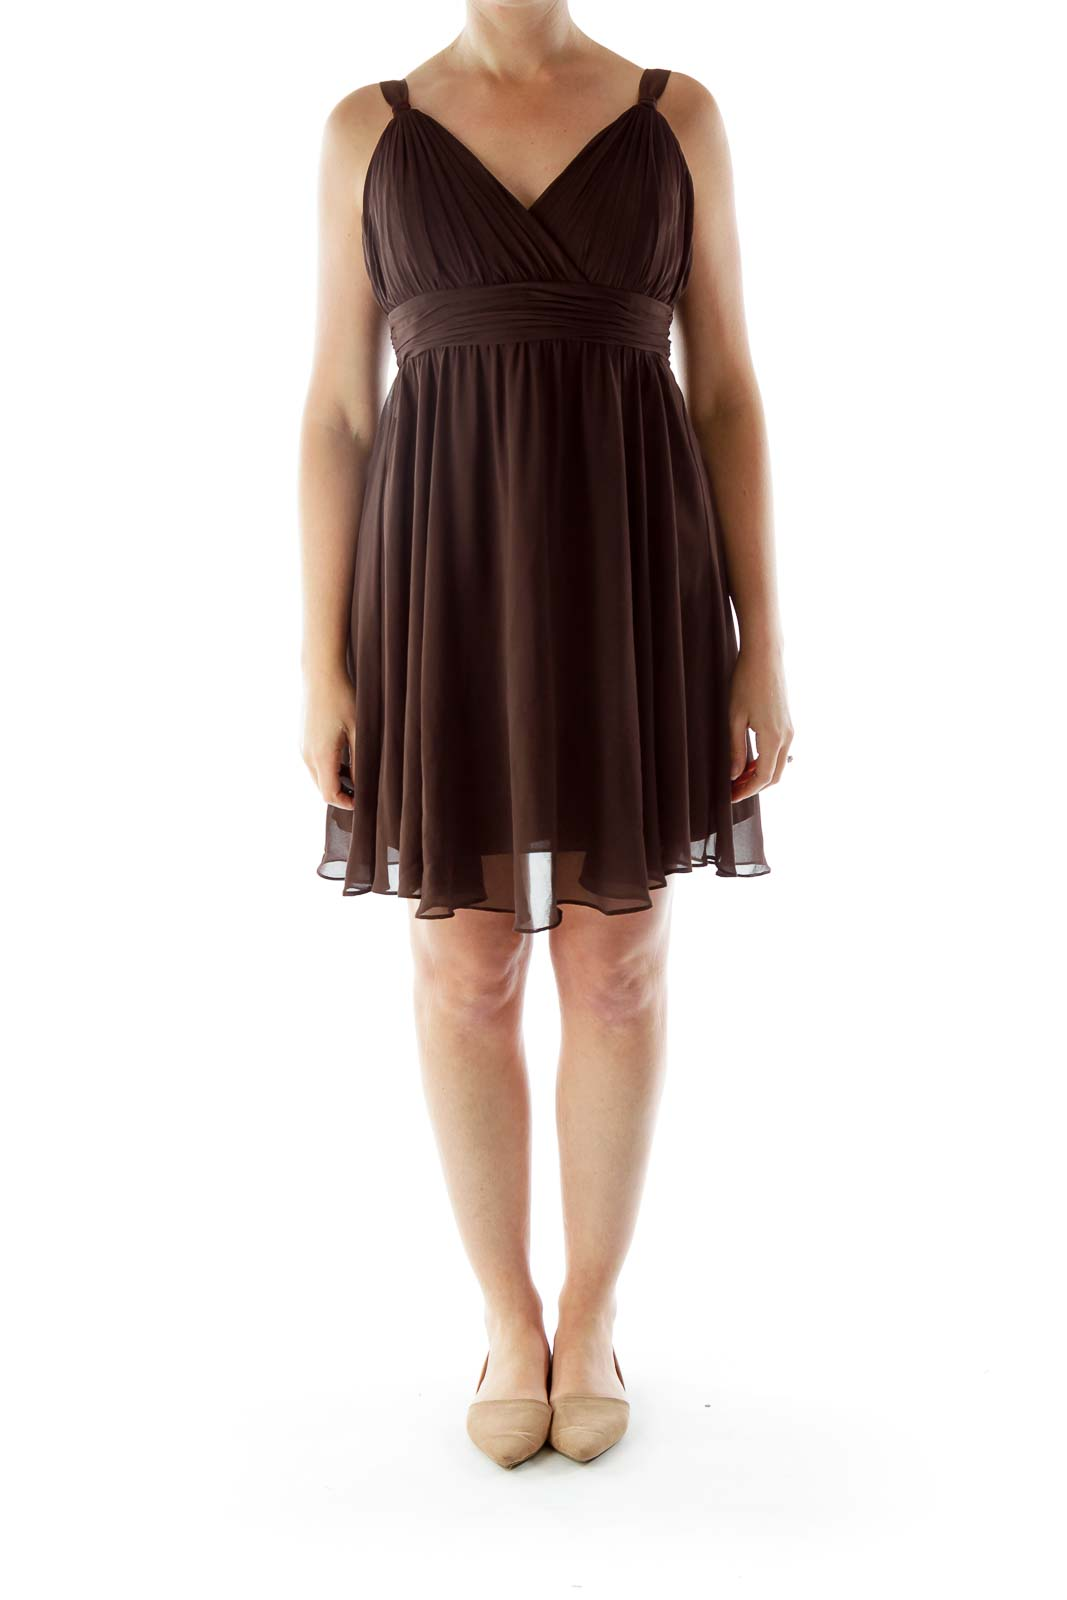 Brown V-Neck Chiffon Dress